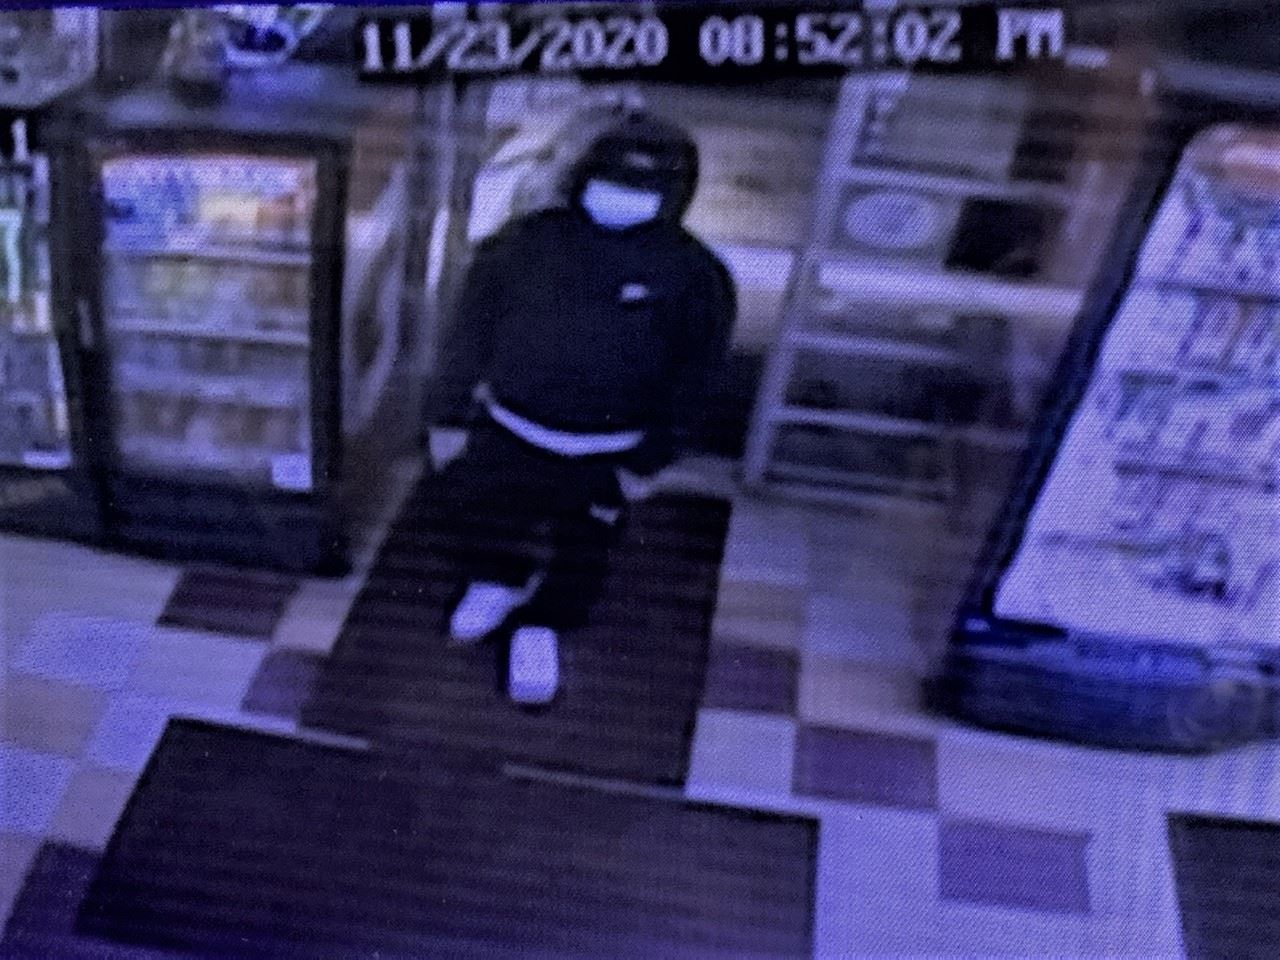 In and Out Robbery Suspect 1 11-23-20